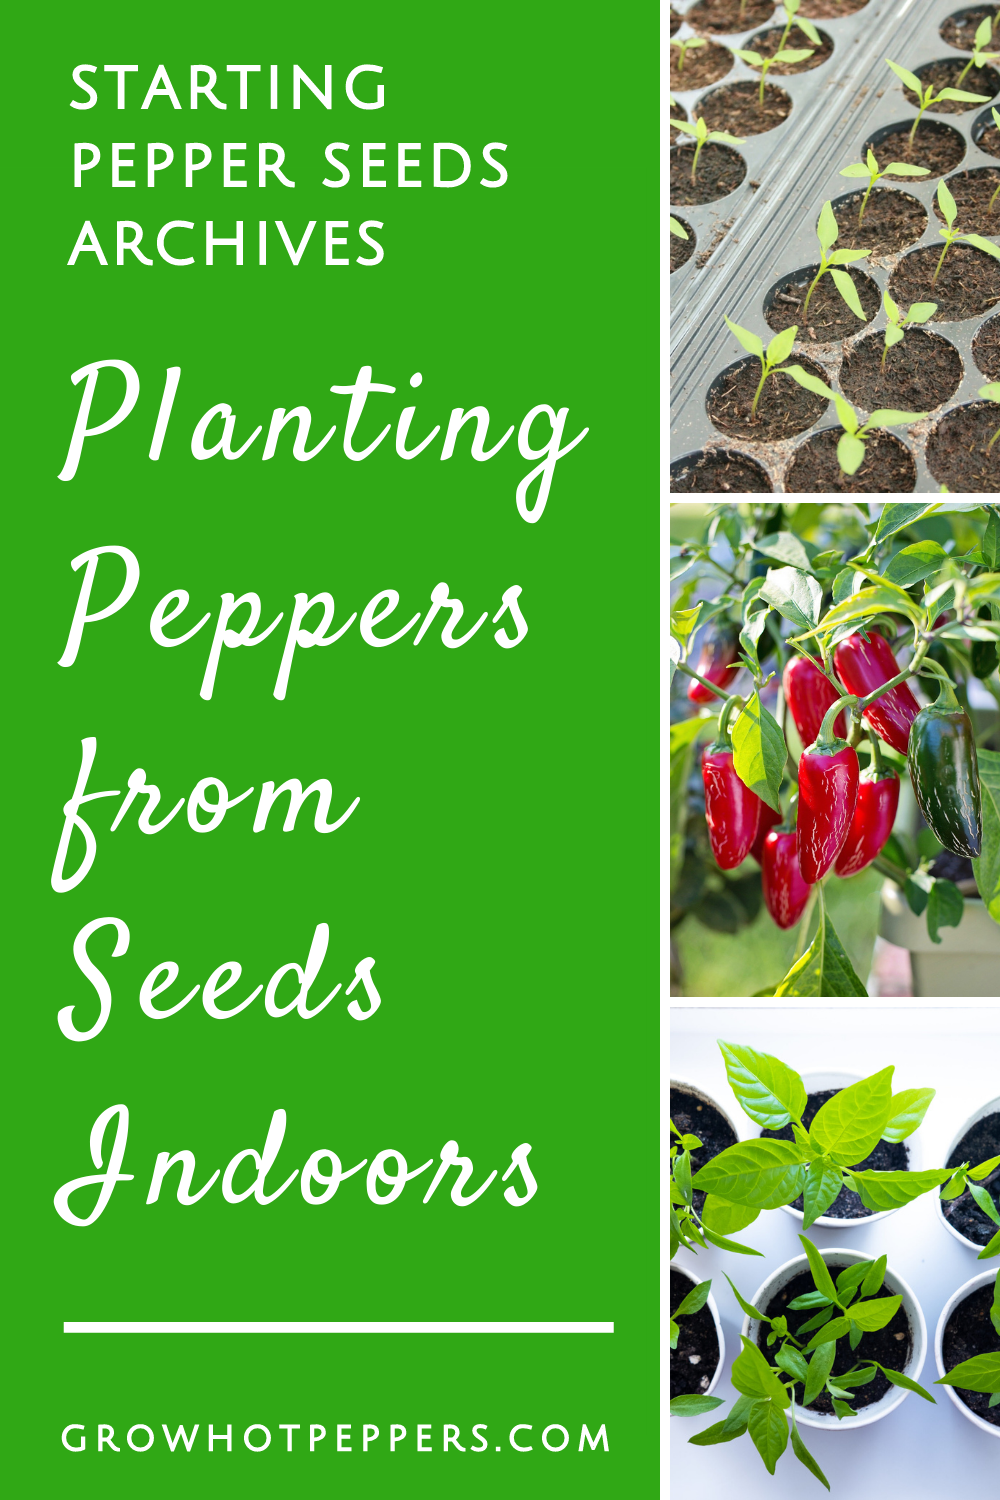 How to Get Pepper Seeds for Planting + Germinating Seeds Indoors